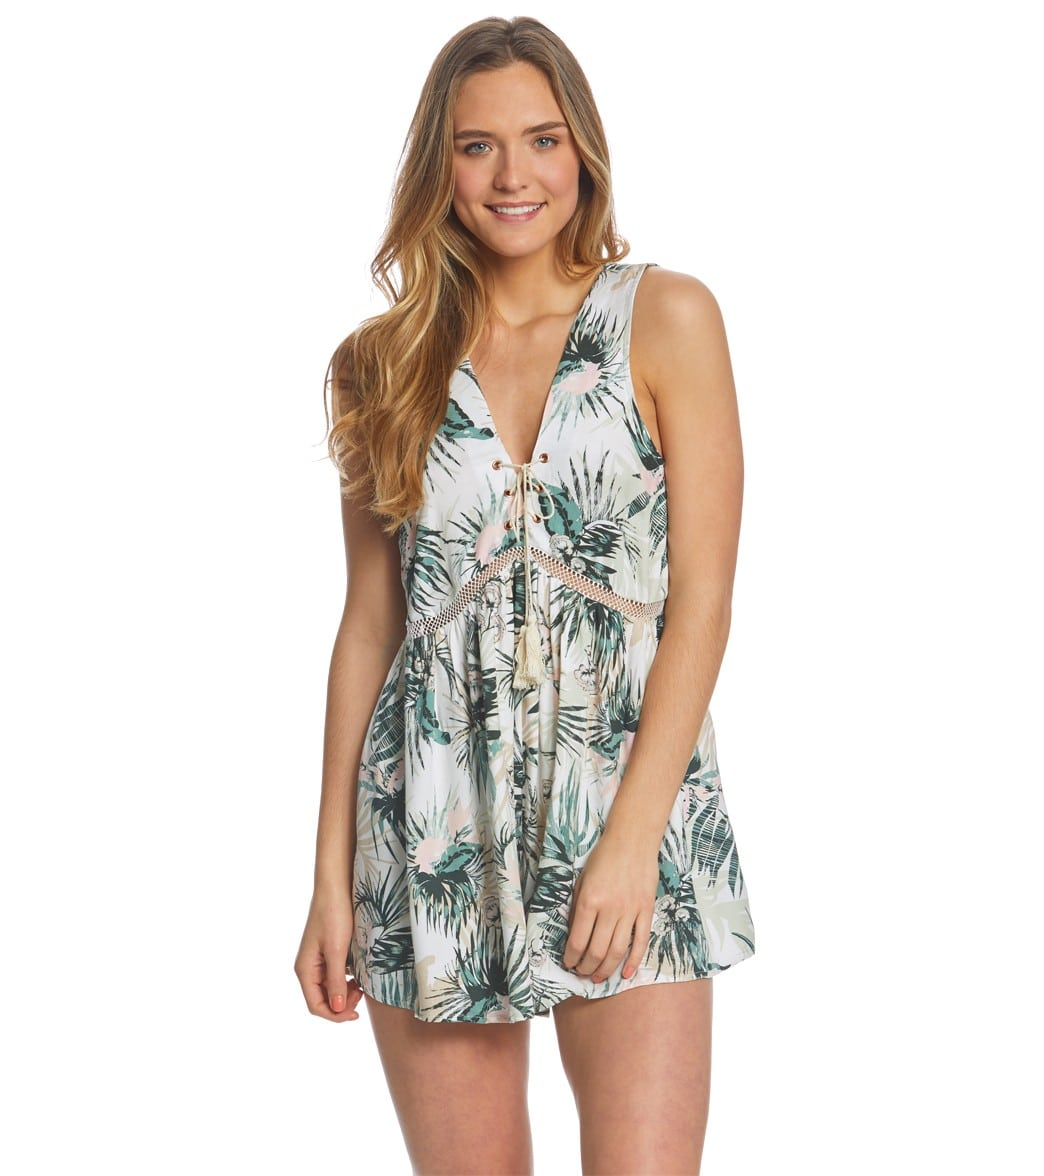 a990c18bac5 Somedays Lovin Coastal Roaming Playsuit at SwimOutlet.com - Free Shipping